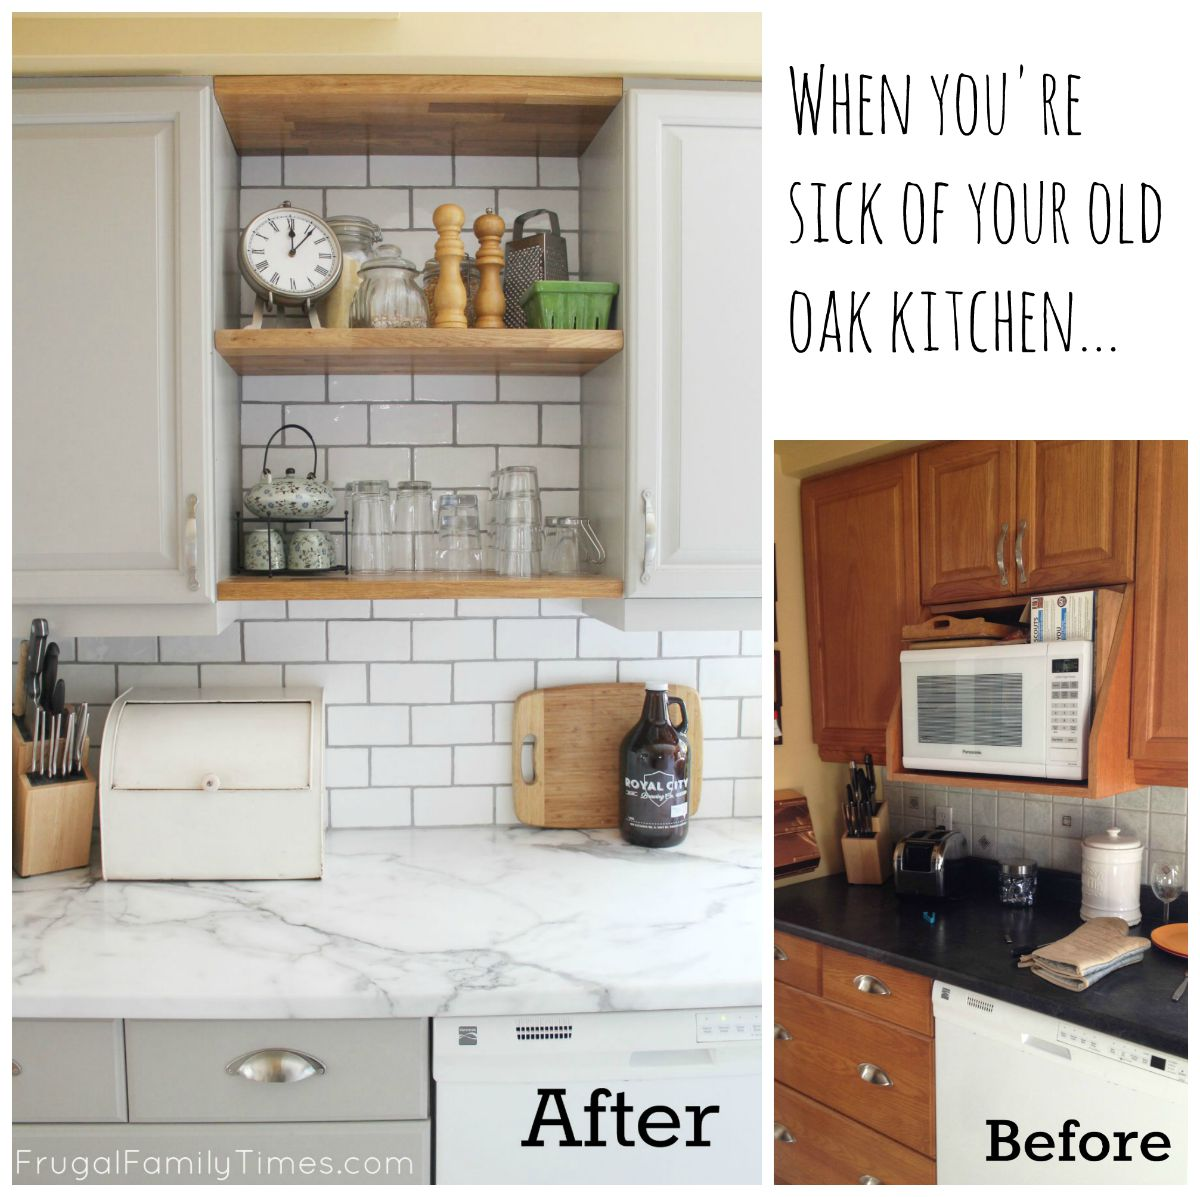 When youre sick of your old oak kitchenKitchen Update for Way